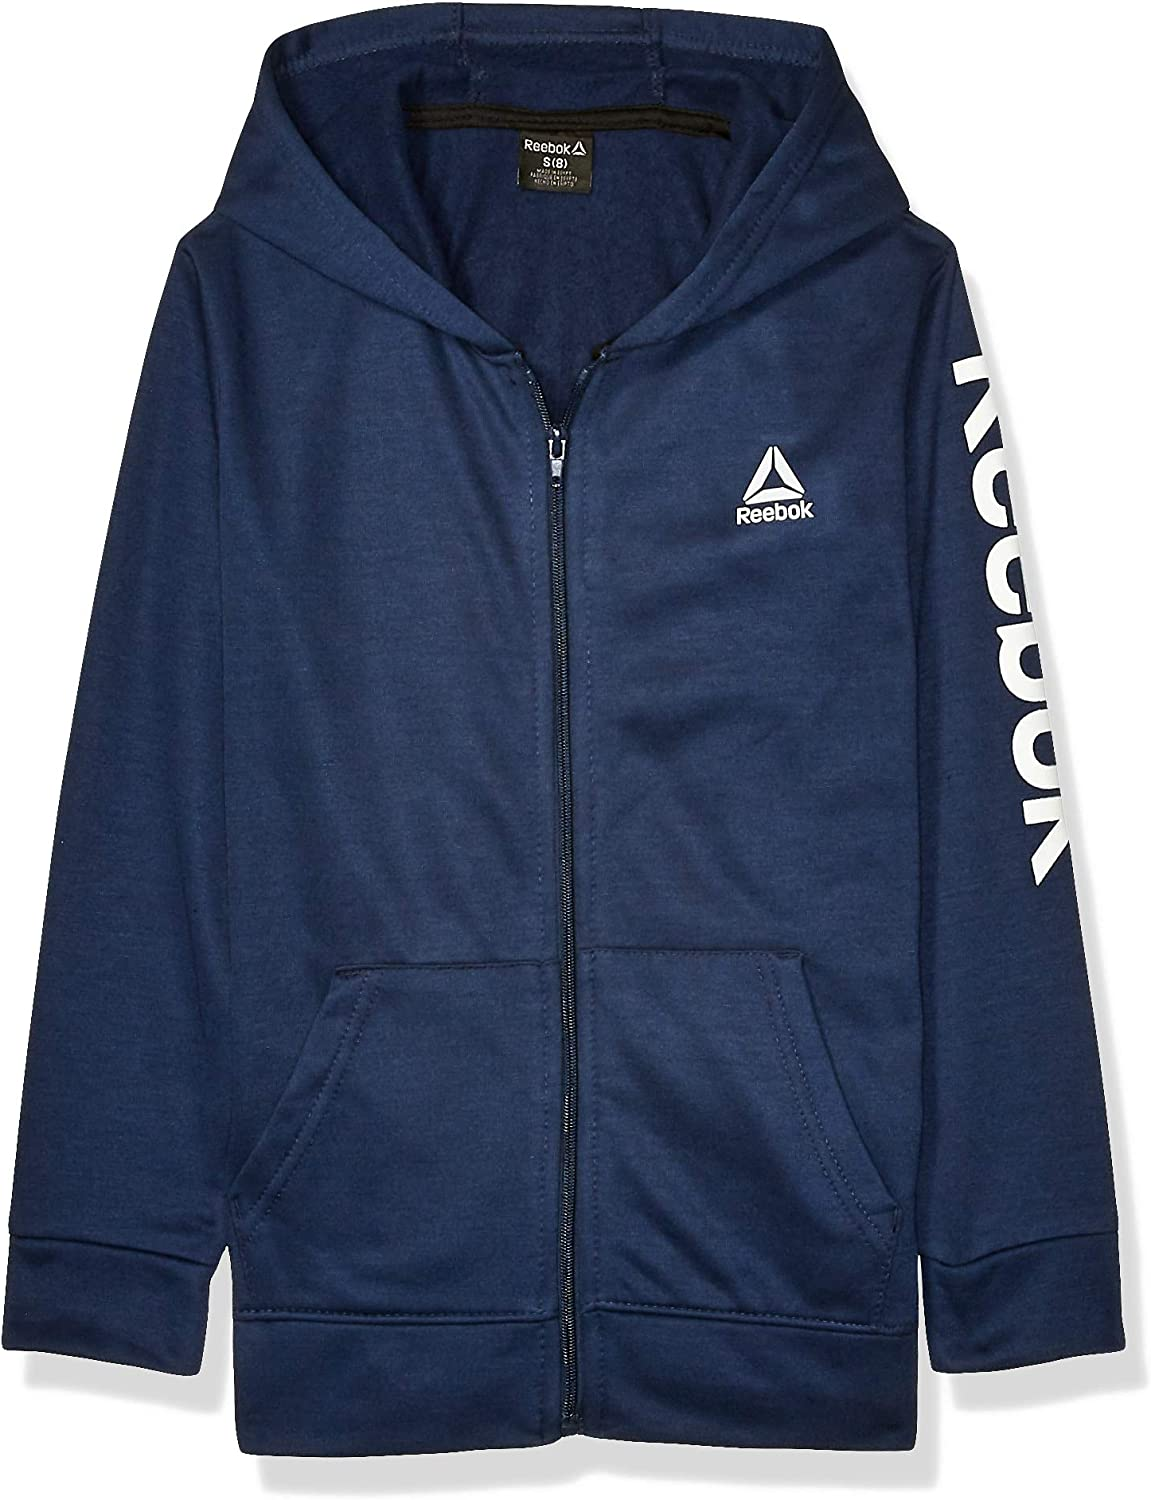 12 Zip Homme Sweat Marine Reebok